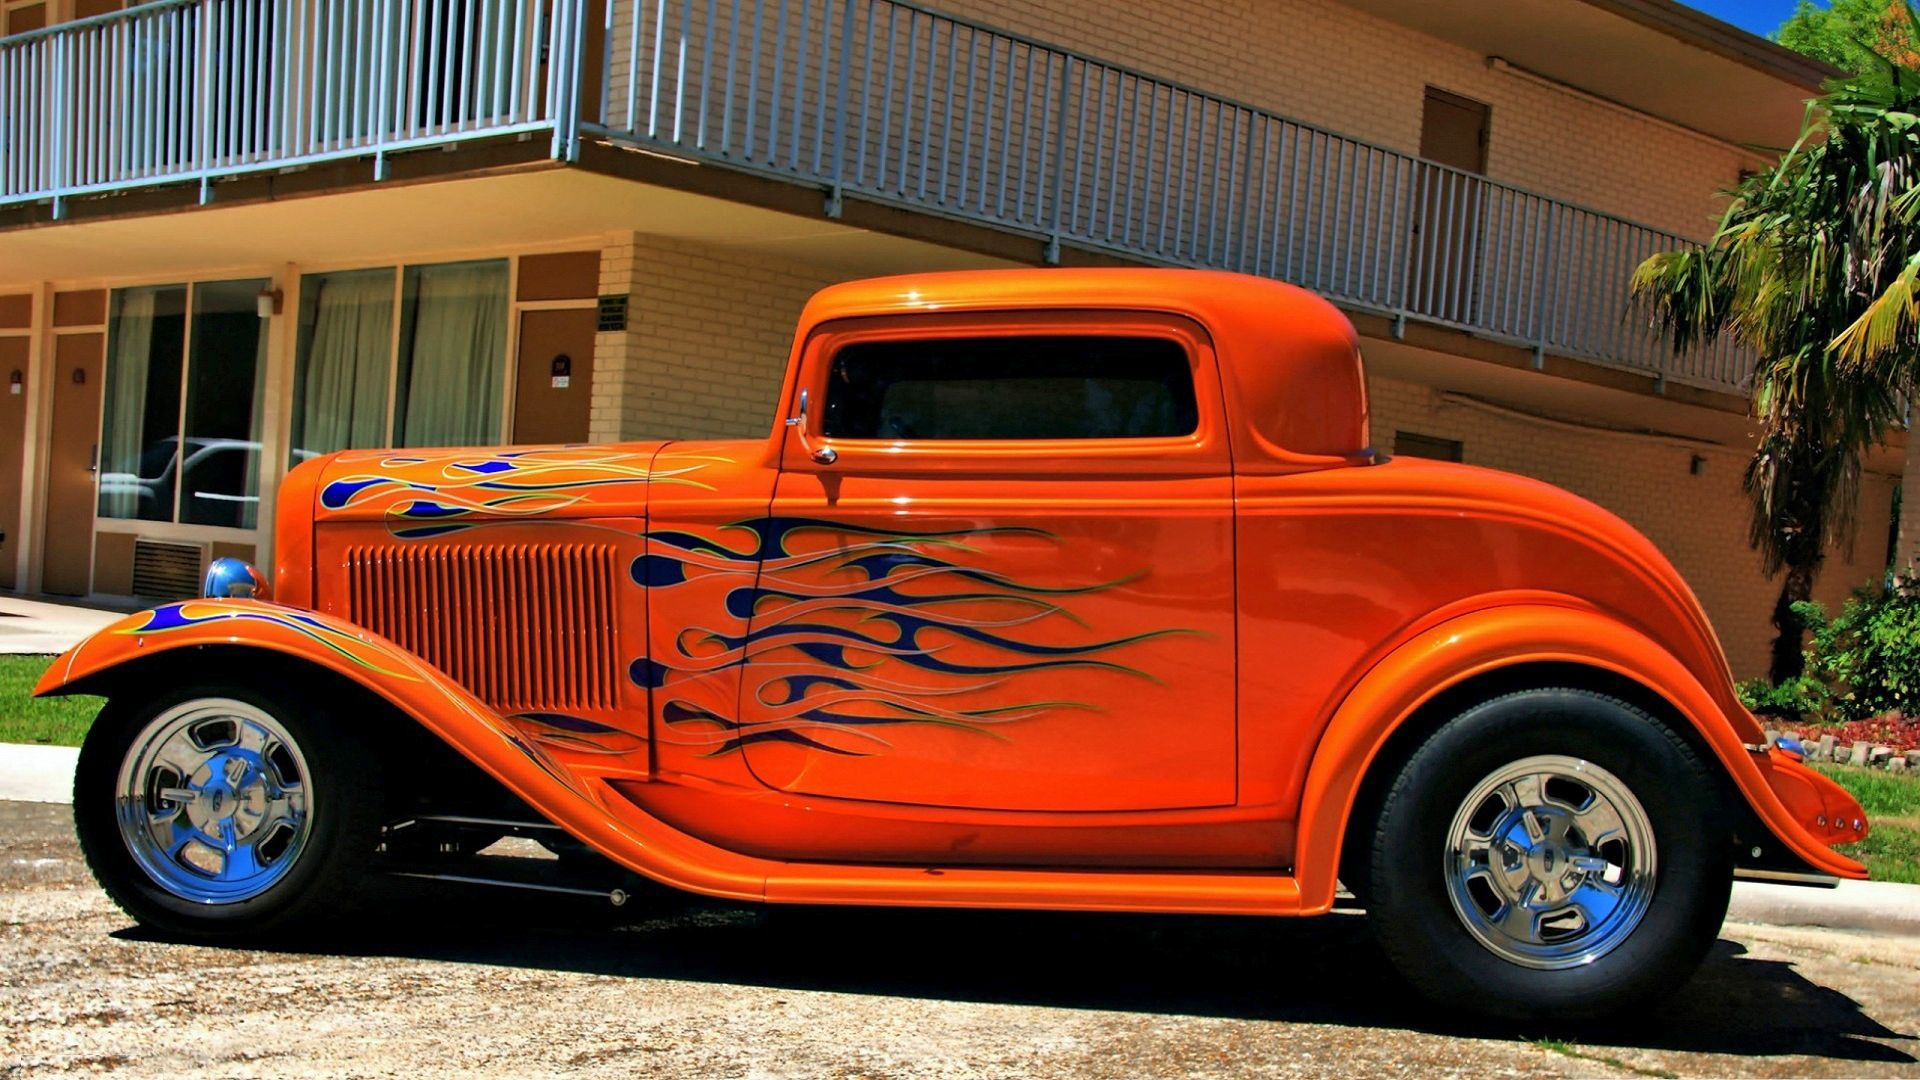 Hot Rod Flames Hot Rod Car Flames Wallpapers For Free Hot Rods